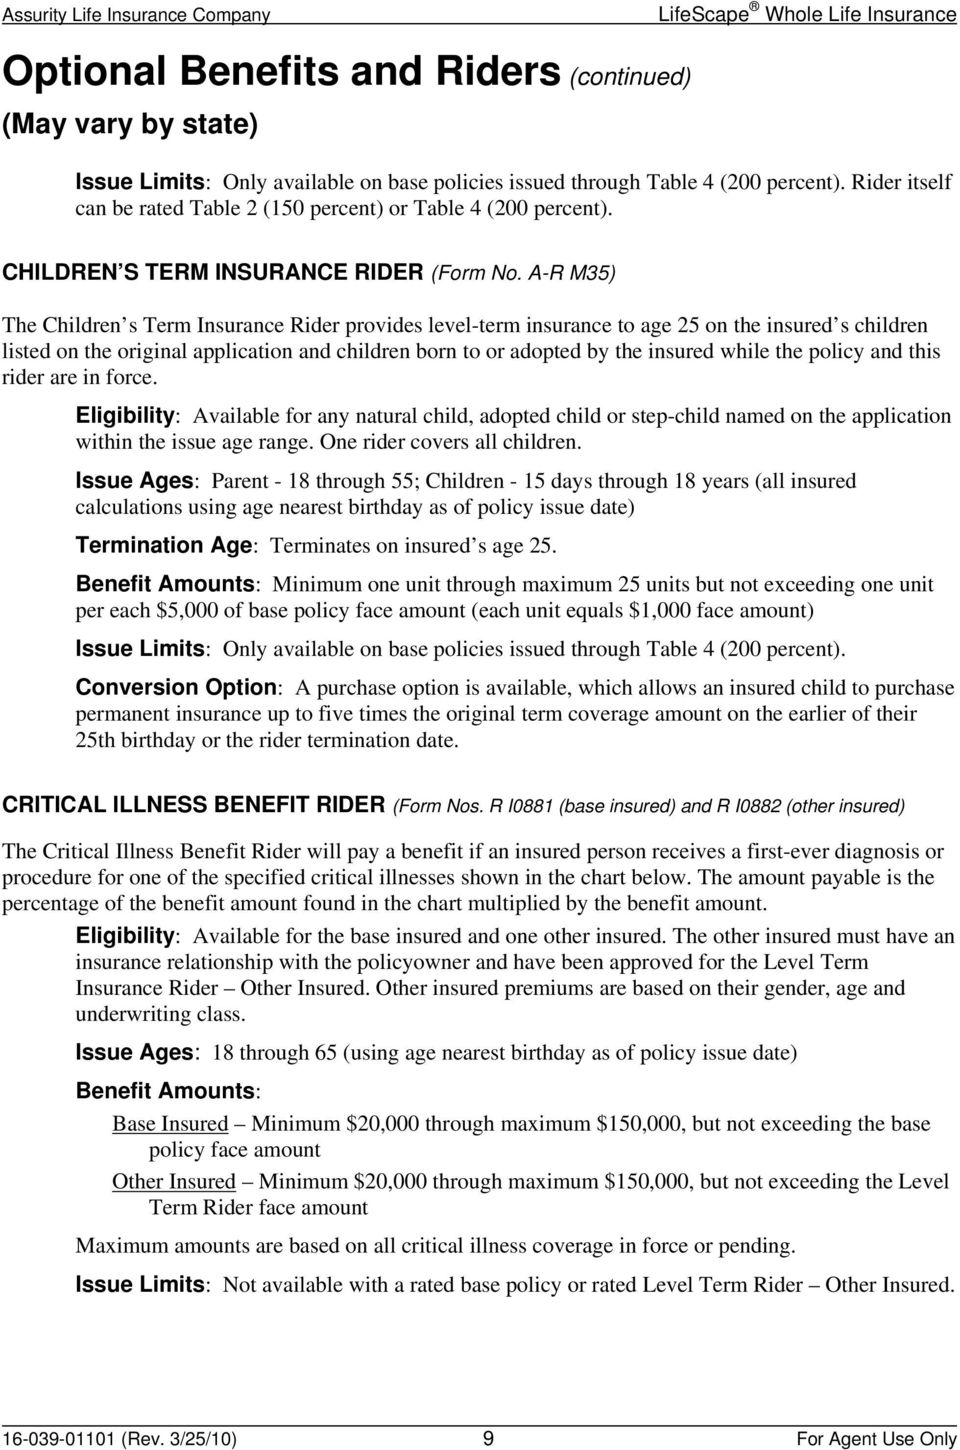 A-R M35) The Children s Term Insurance Rider provides level-term insurance to age 25 on the insured s children listed on the original application and children born to or adopted by the insured while